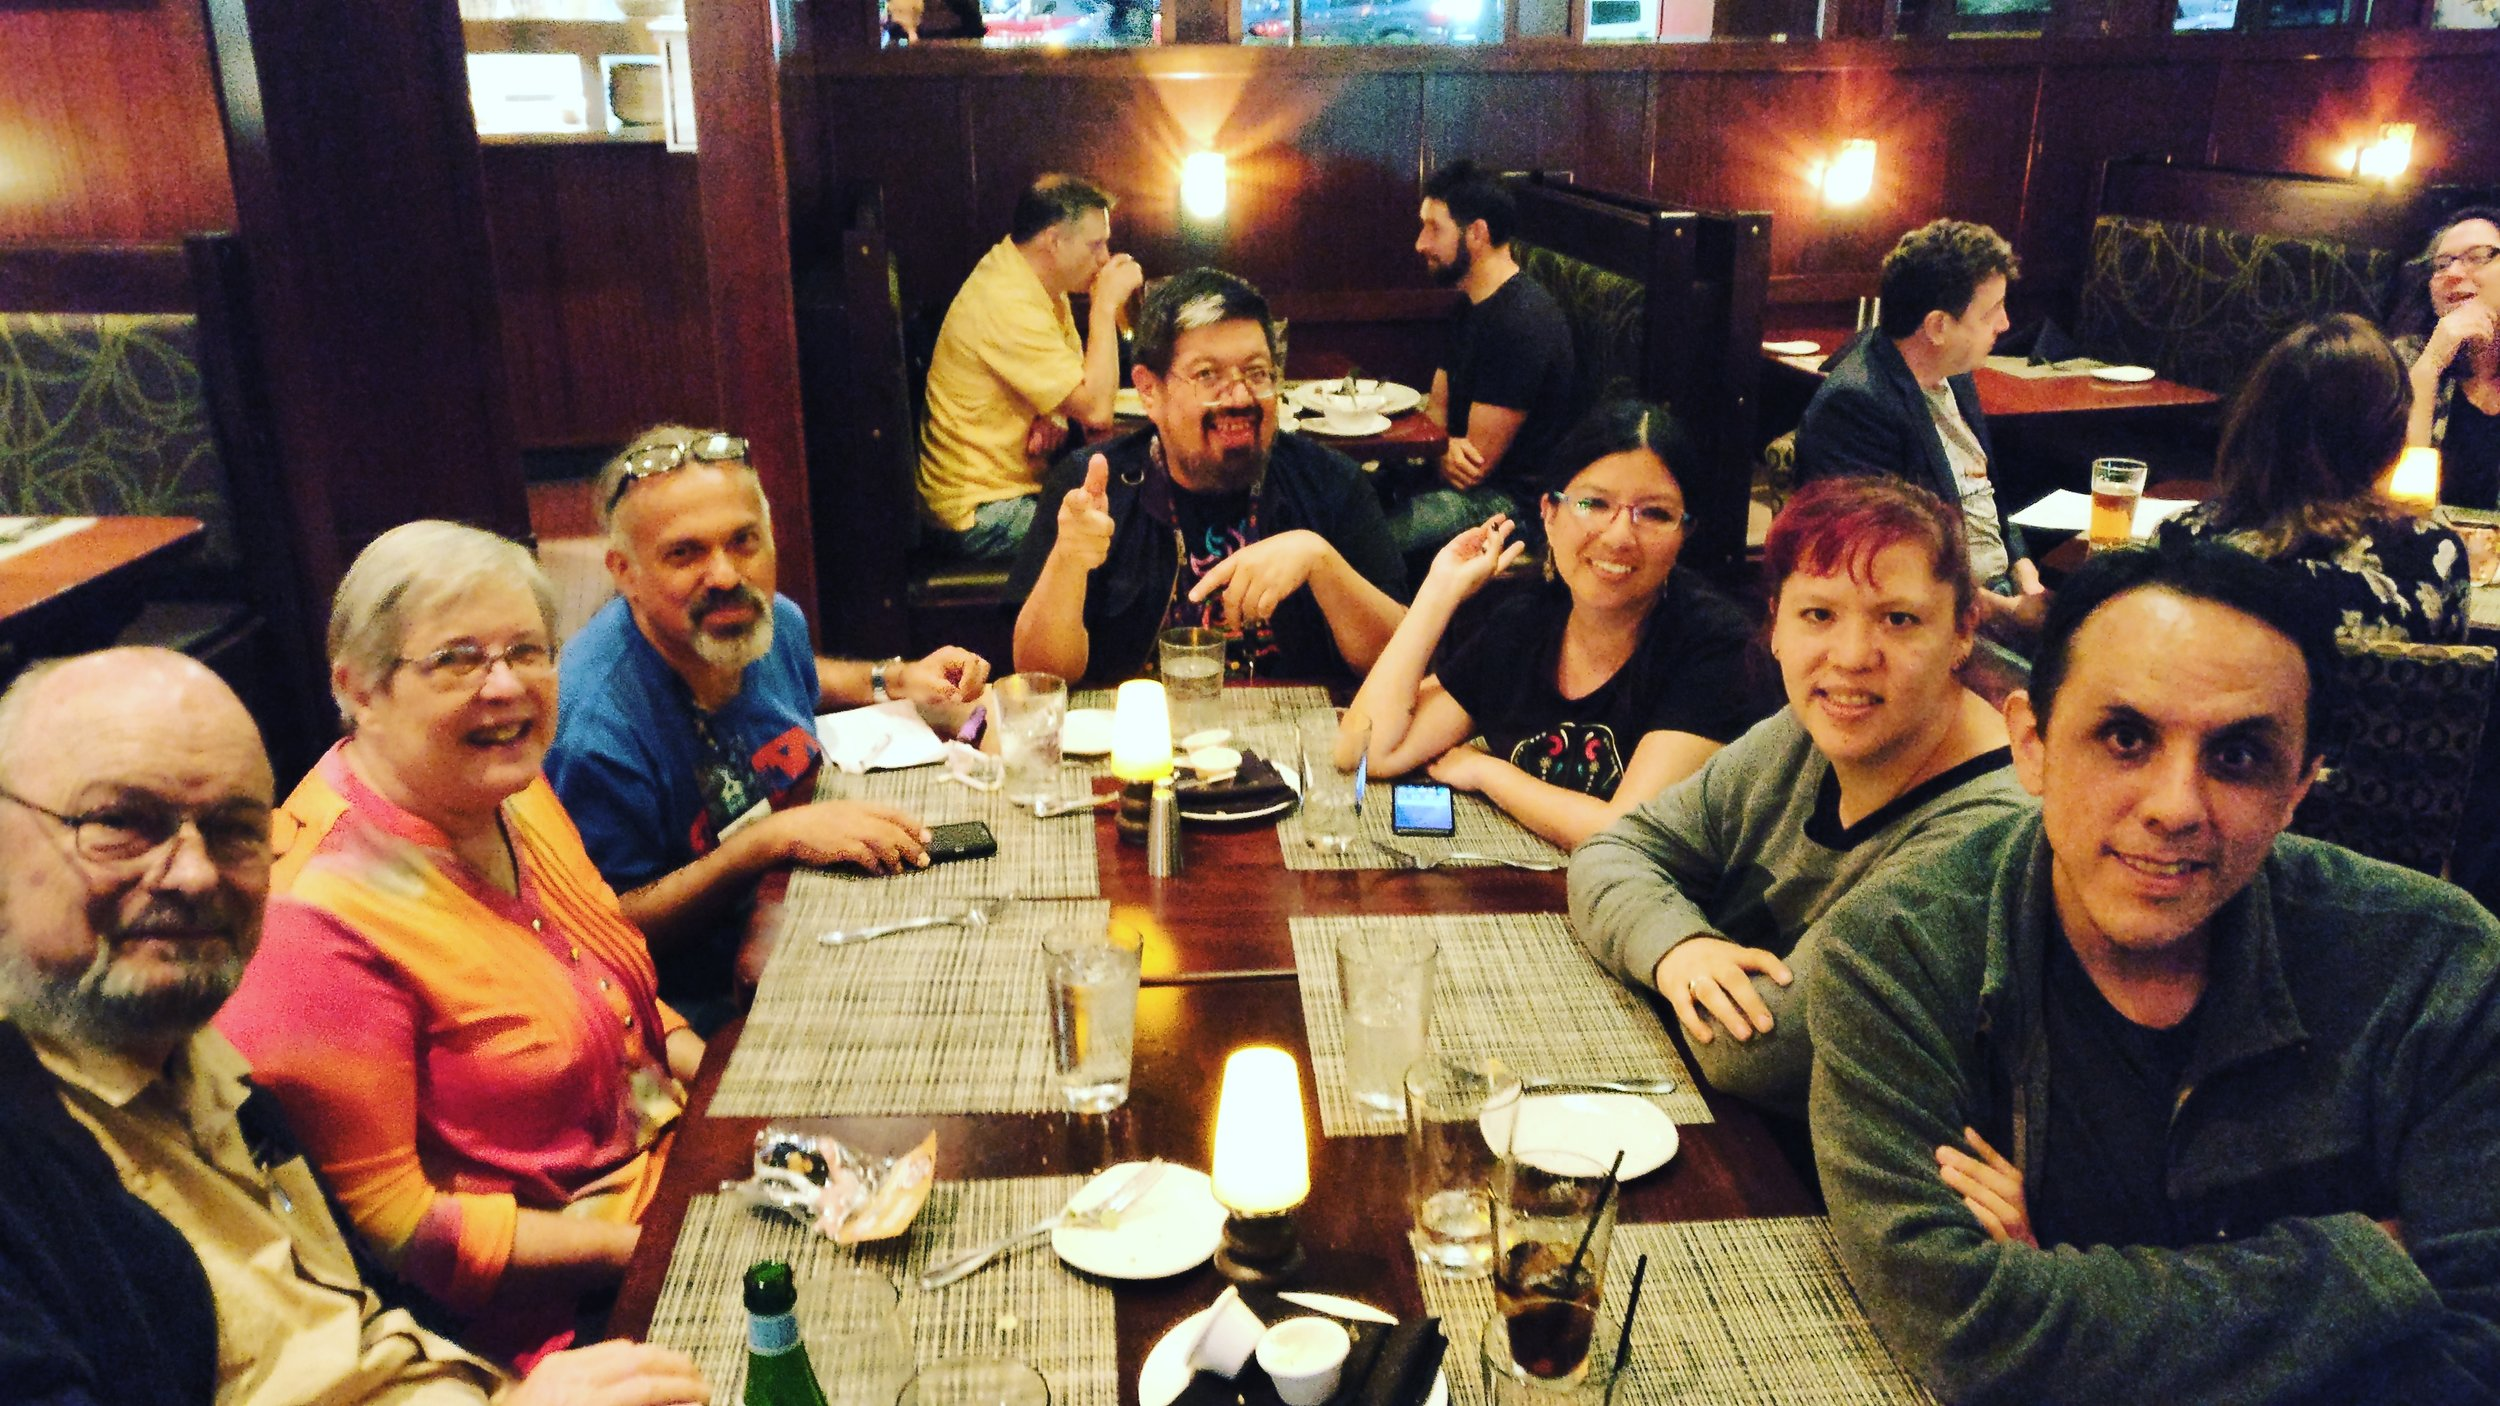 Joe and Gay Haldeman, Gerardo Horacio Porcayo, José Luis Zárate, Iliana Vargas, Raquel Castro, and Alberto Chimal at dinner